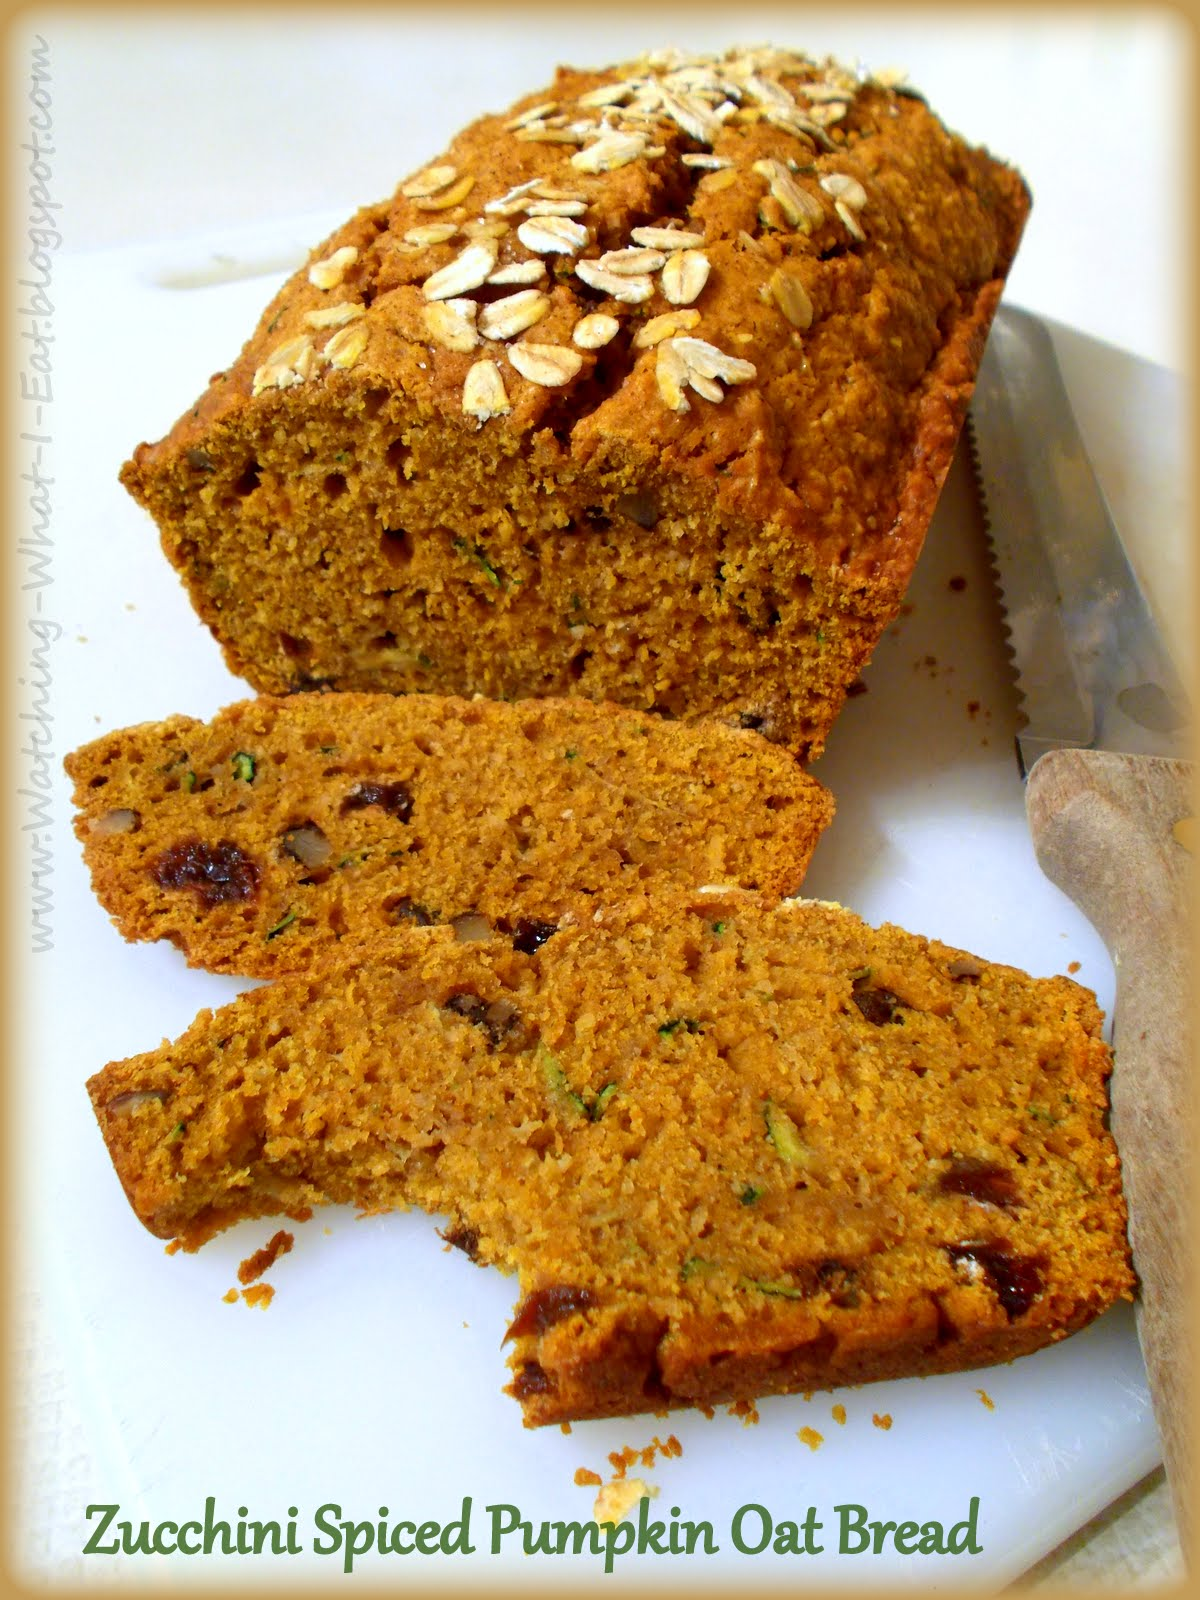 Watching What I Eat: Zucchini Spiced Pumpkin Oat Bread